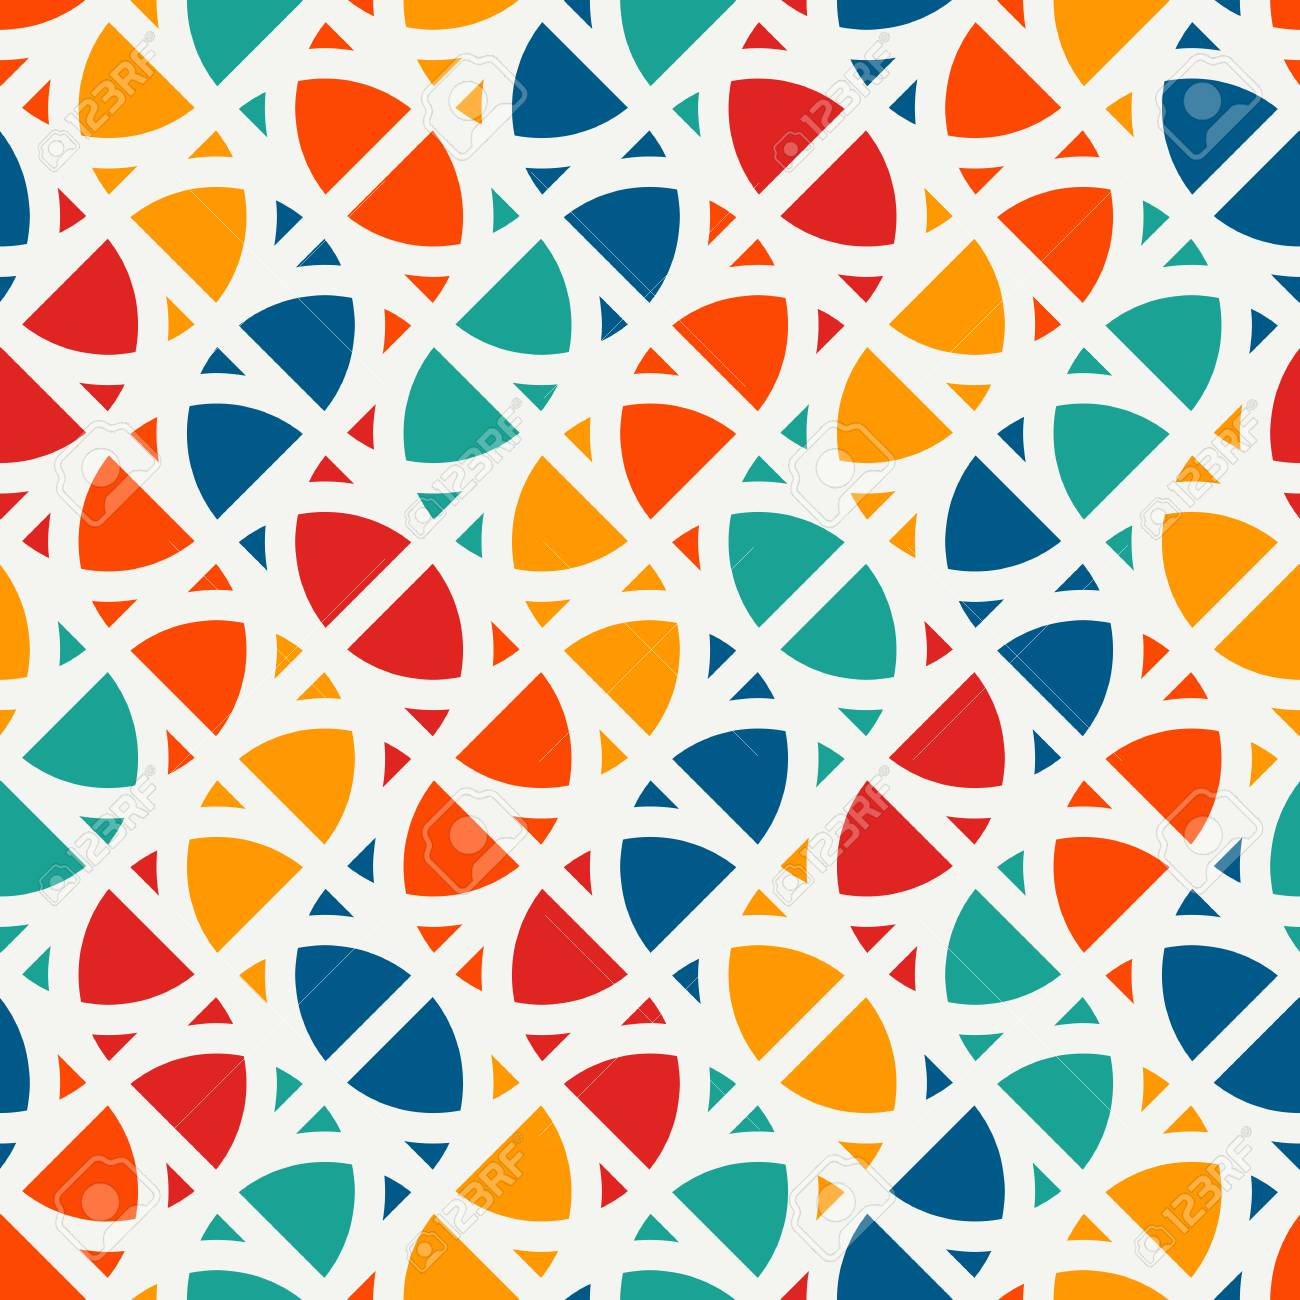 Bright modern print with geometric shapes. Contemporary abstract background with repeated figures. Colorful seamless pattern with geometric forms. - 97420864